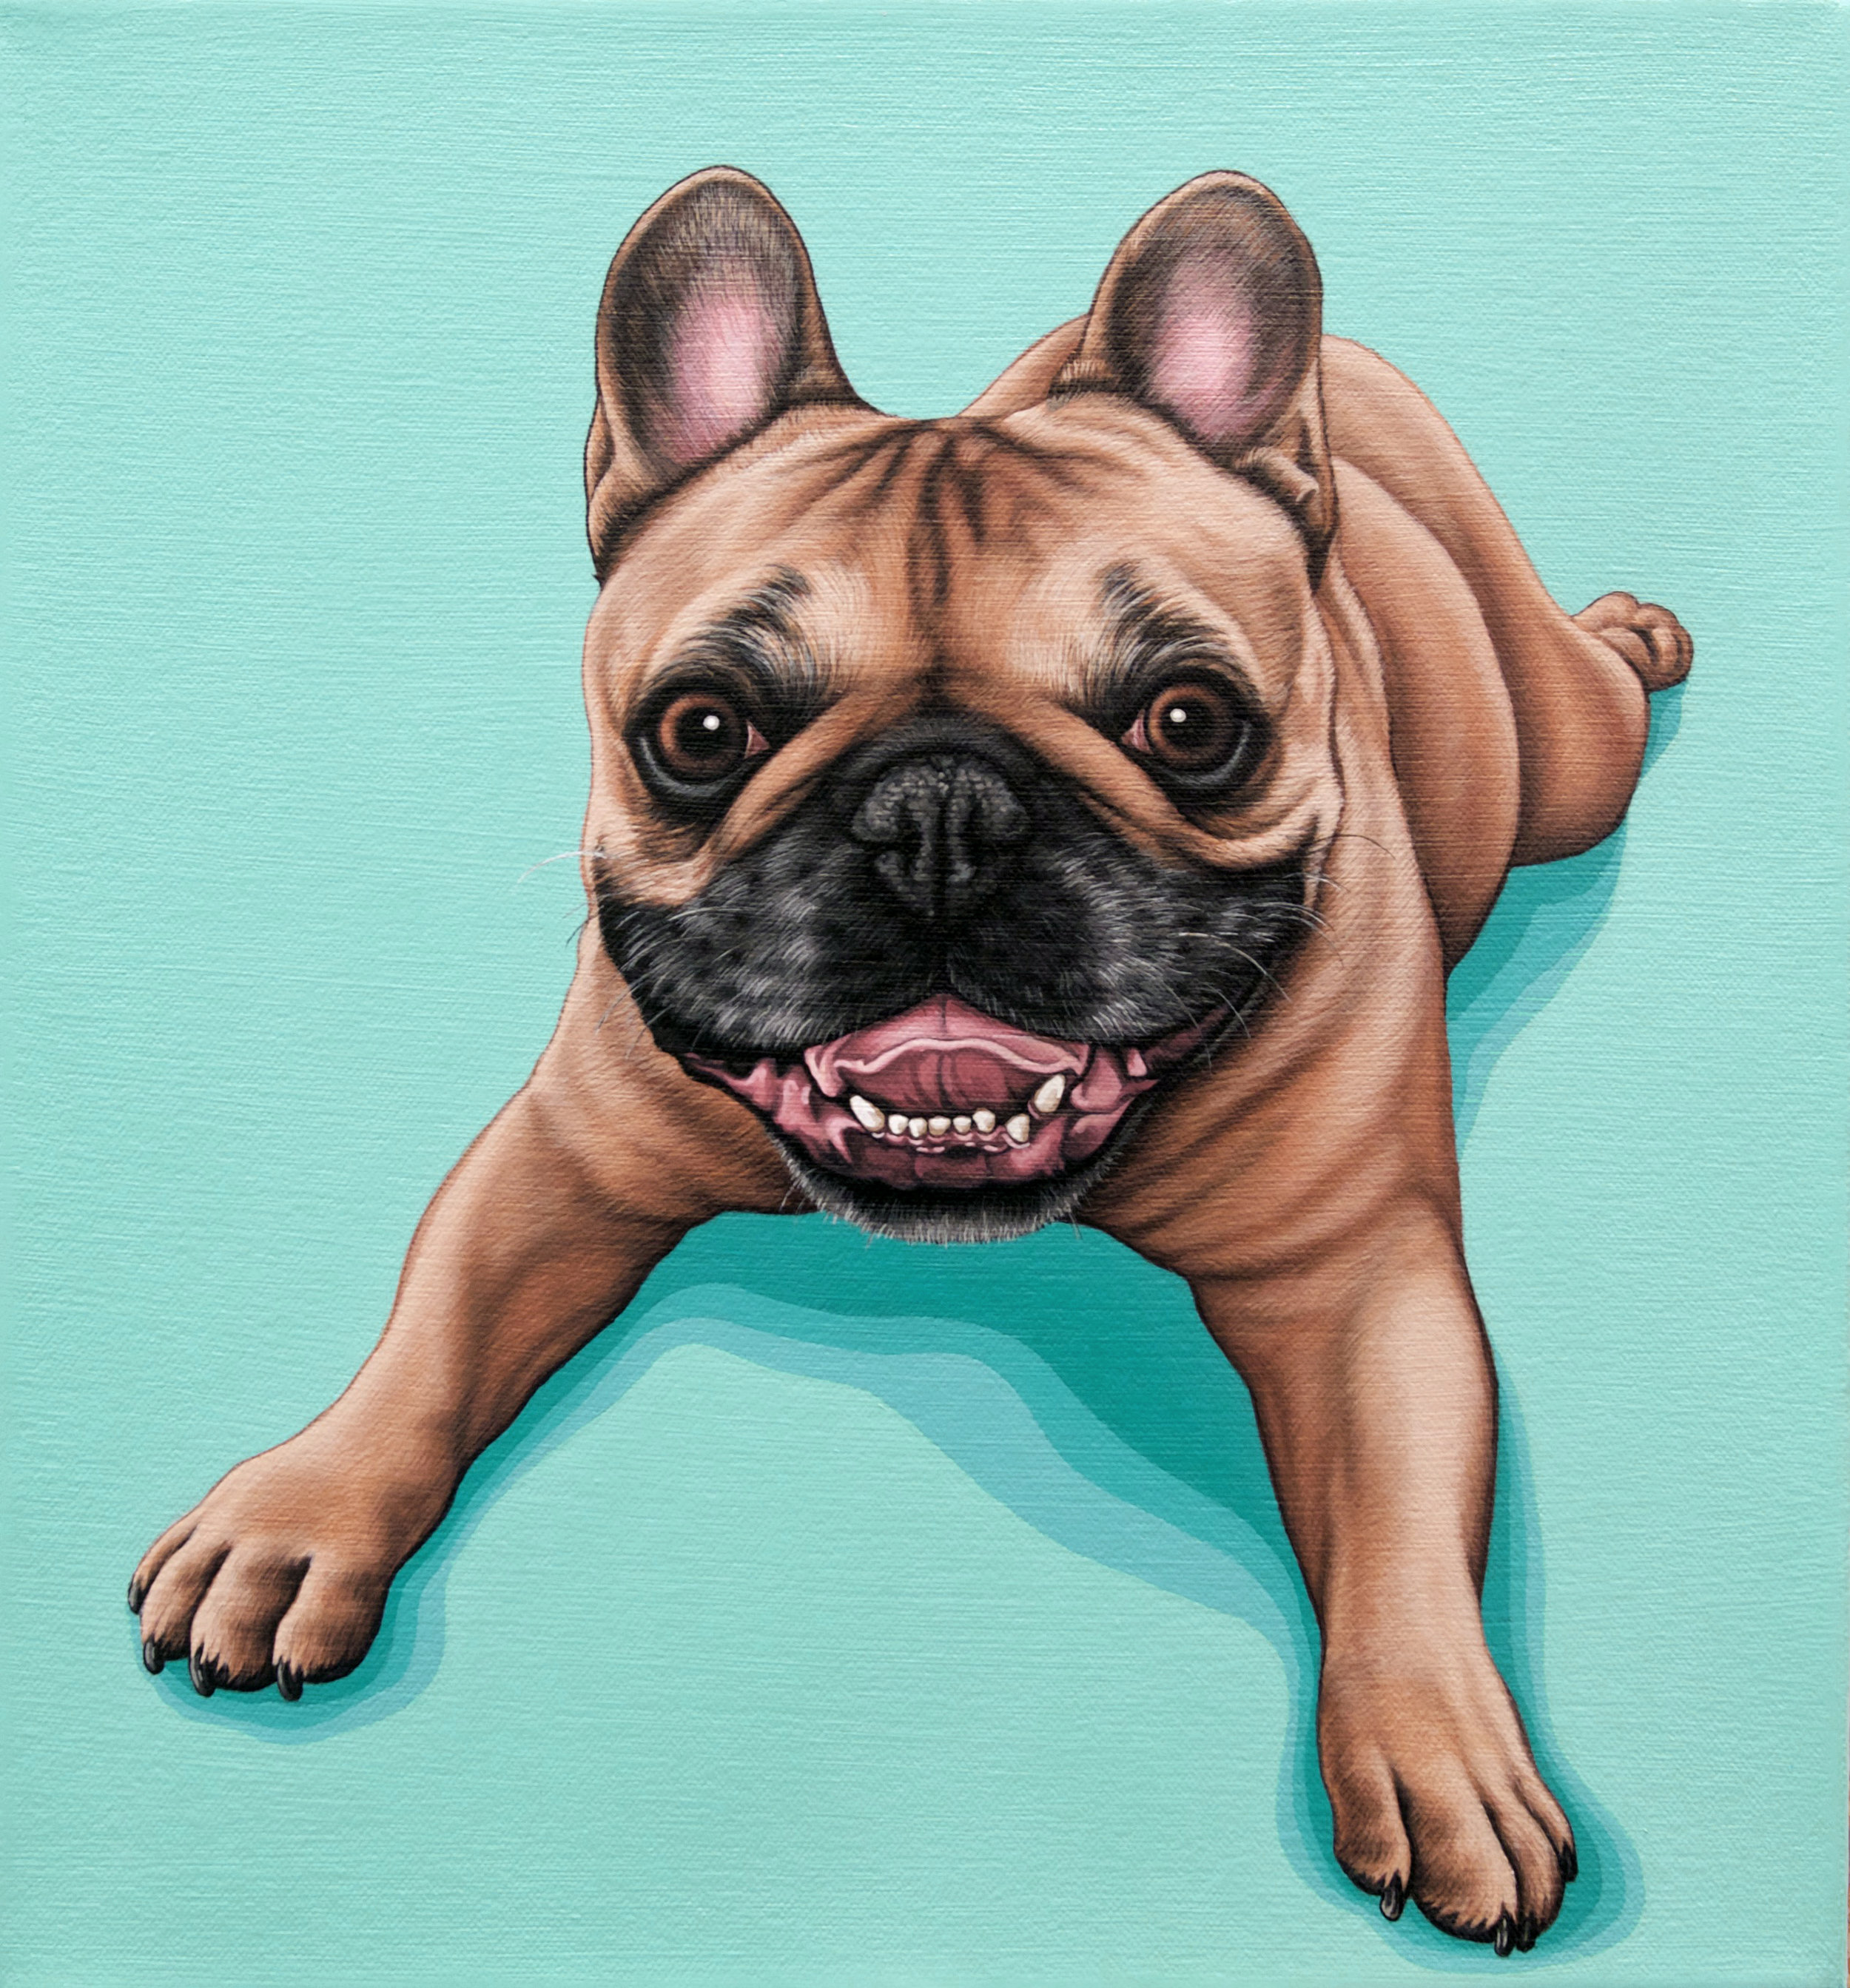 """Rocky"", latex enamel on canvas, 12"" x 12"", 2019"